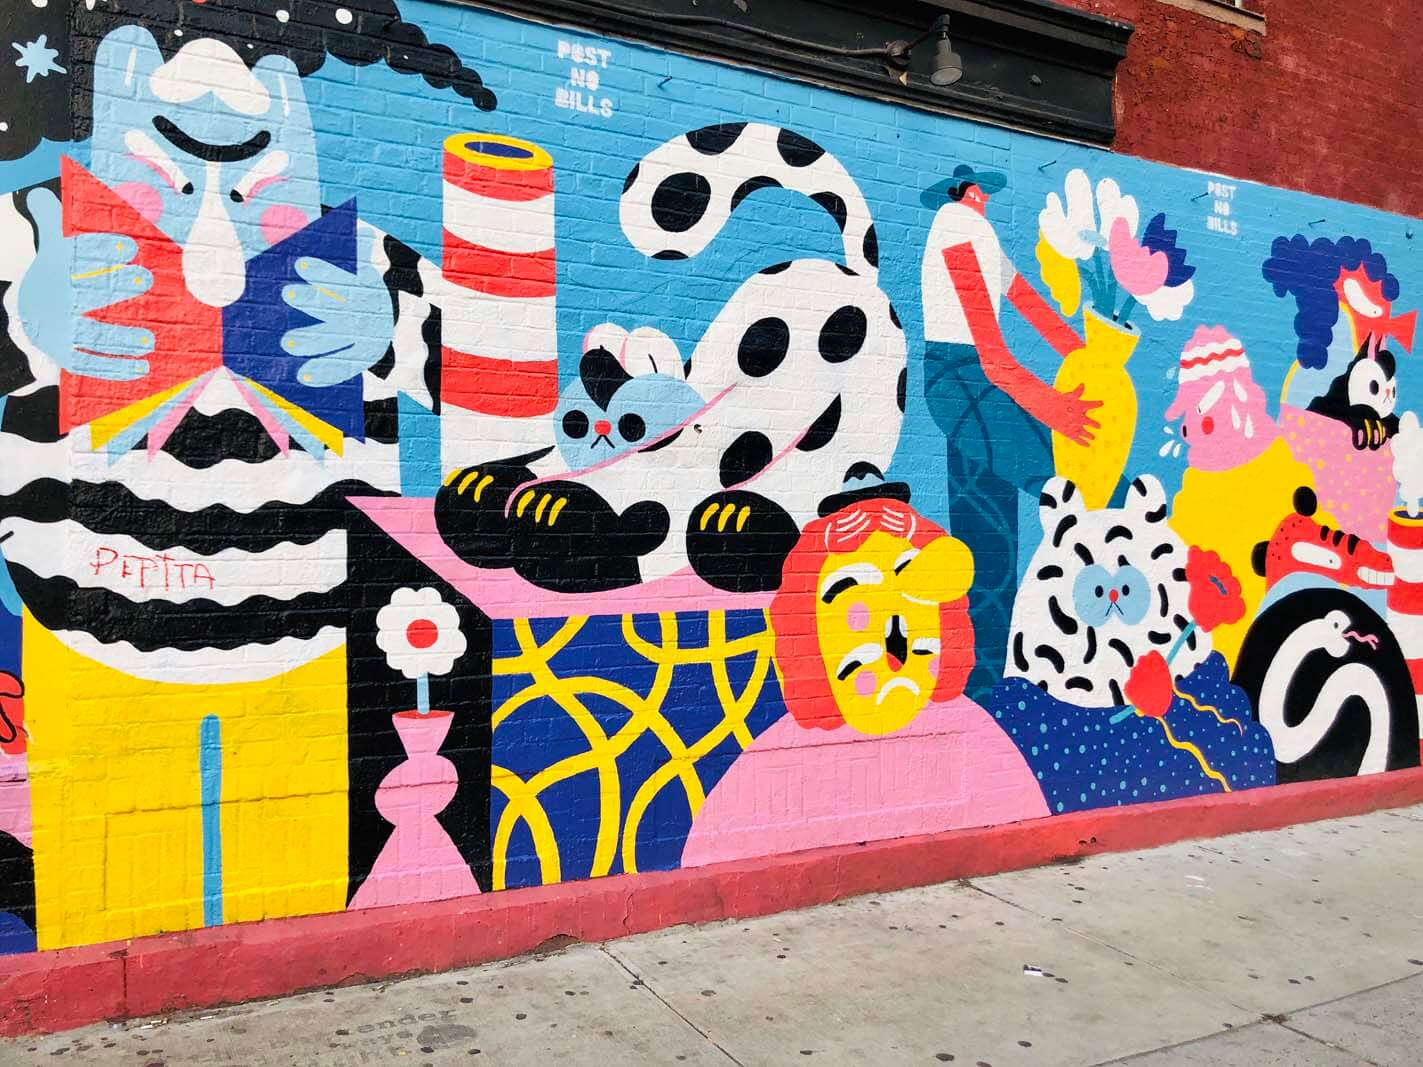 The madness of NY mural in Williamsburg by Brolga